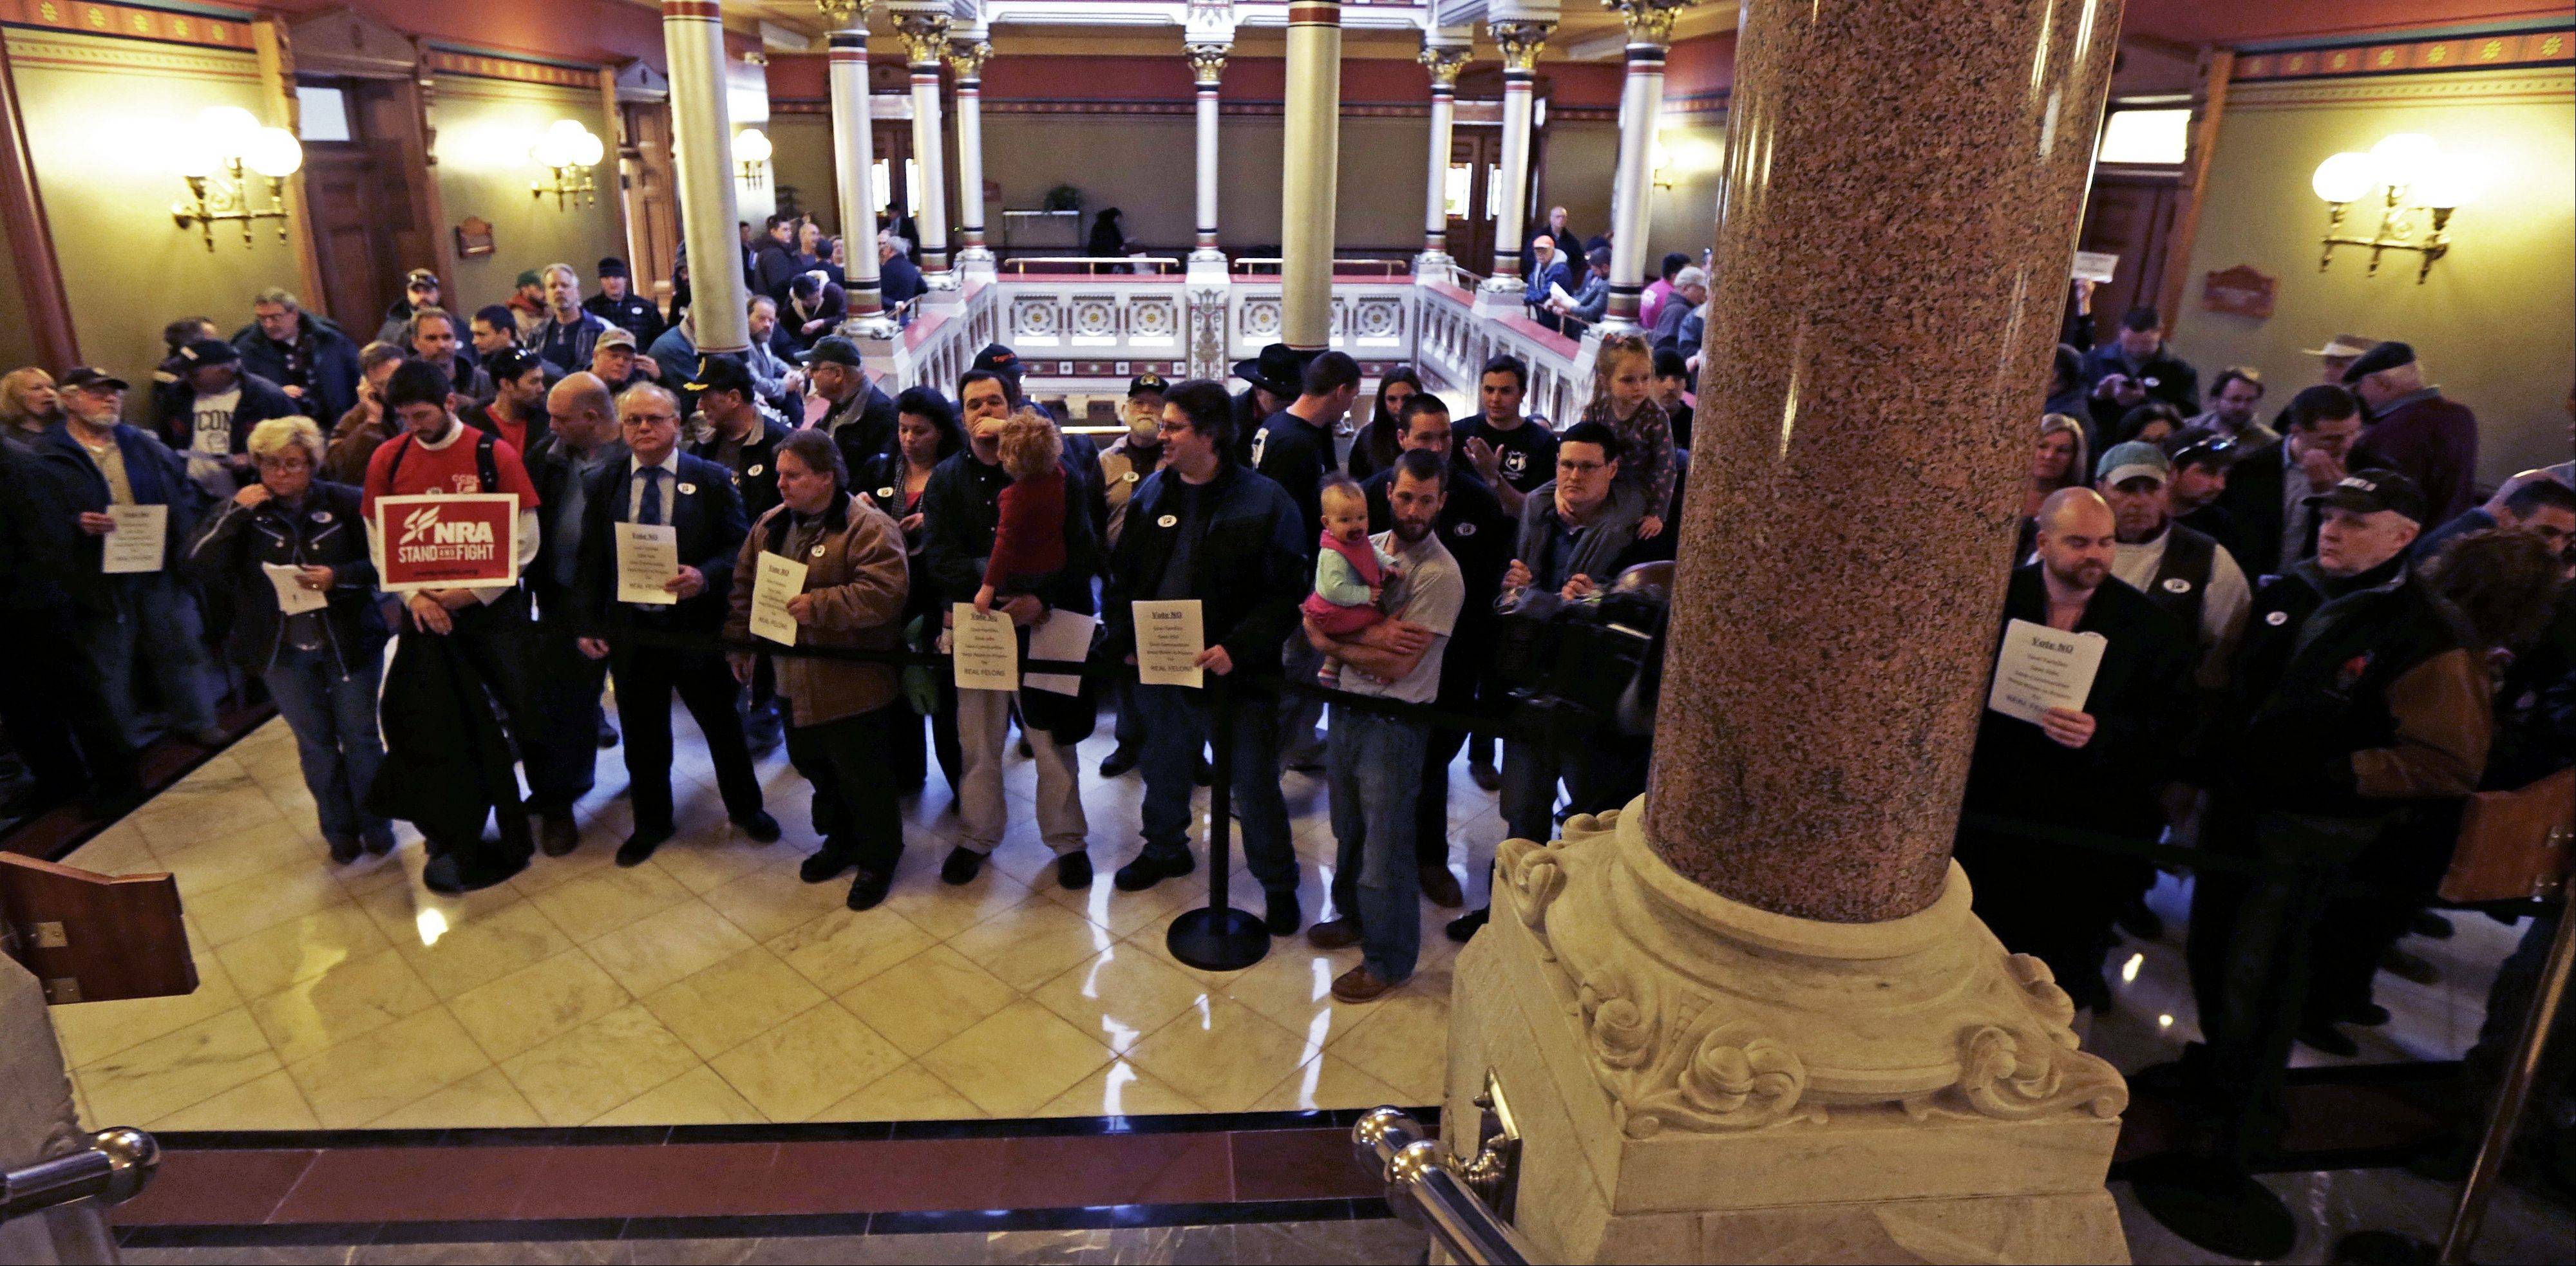 Gun rights advocates fill the hallways of the Capitol in Hartford, Conn., Wednesday, April 3, 2013. Hundreds of gun rights advocates are gathering at the statehouse in Hartford ahead of a vote in the General Assembly on proposed gun-control legislation.